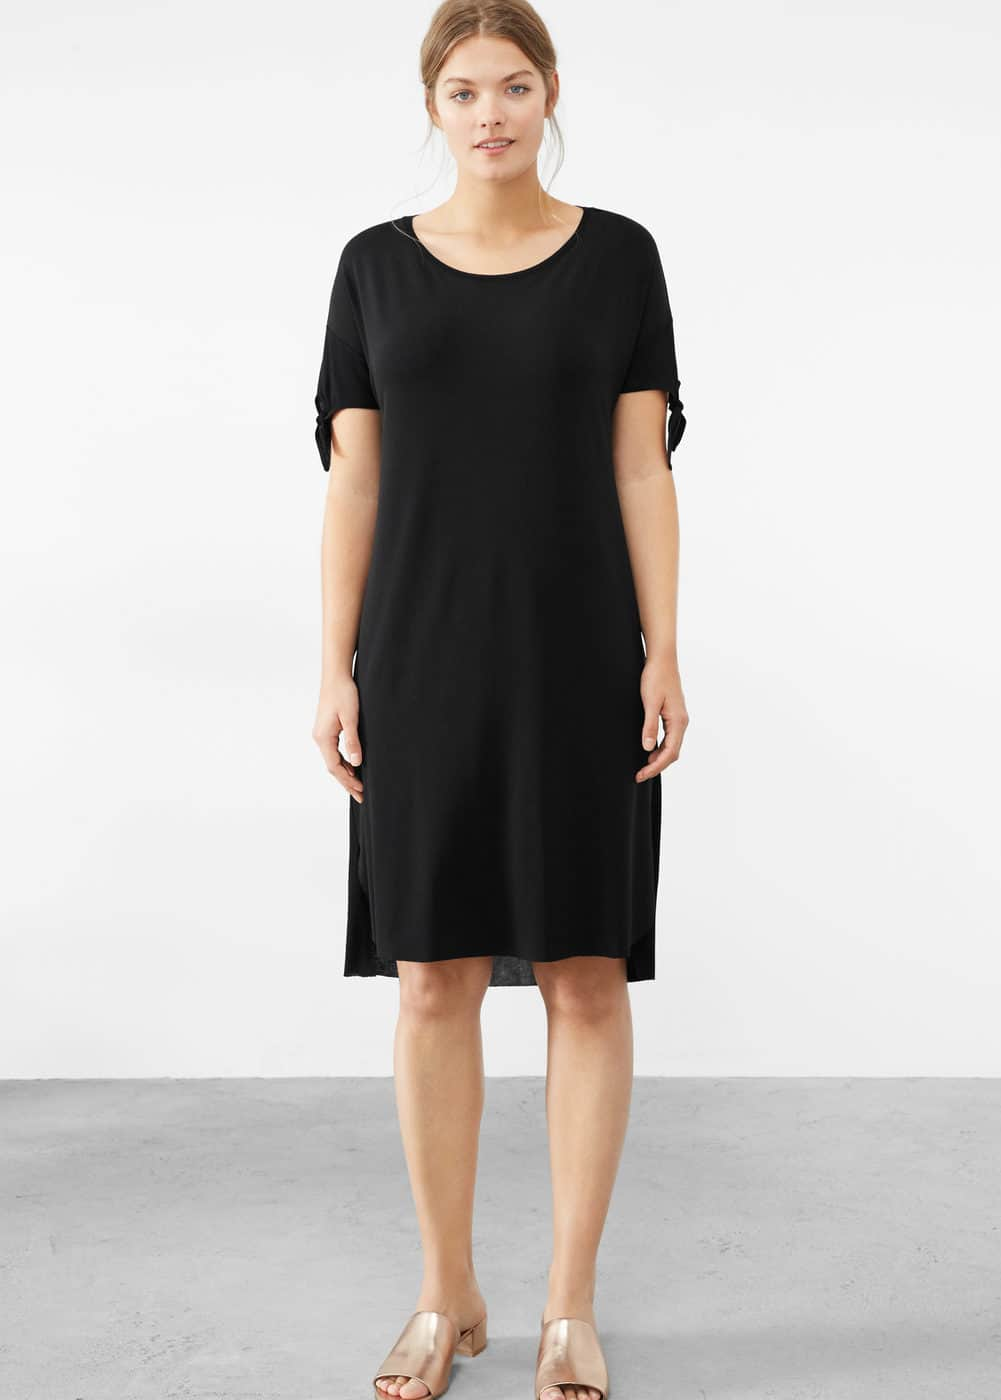 Knot detail contrast dress | VIOLETA BY MNG